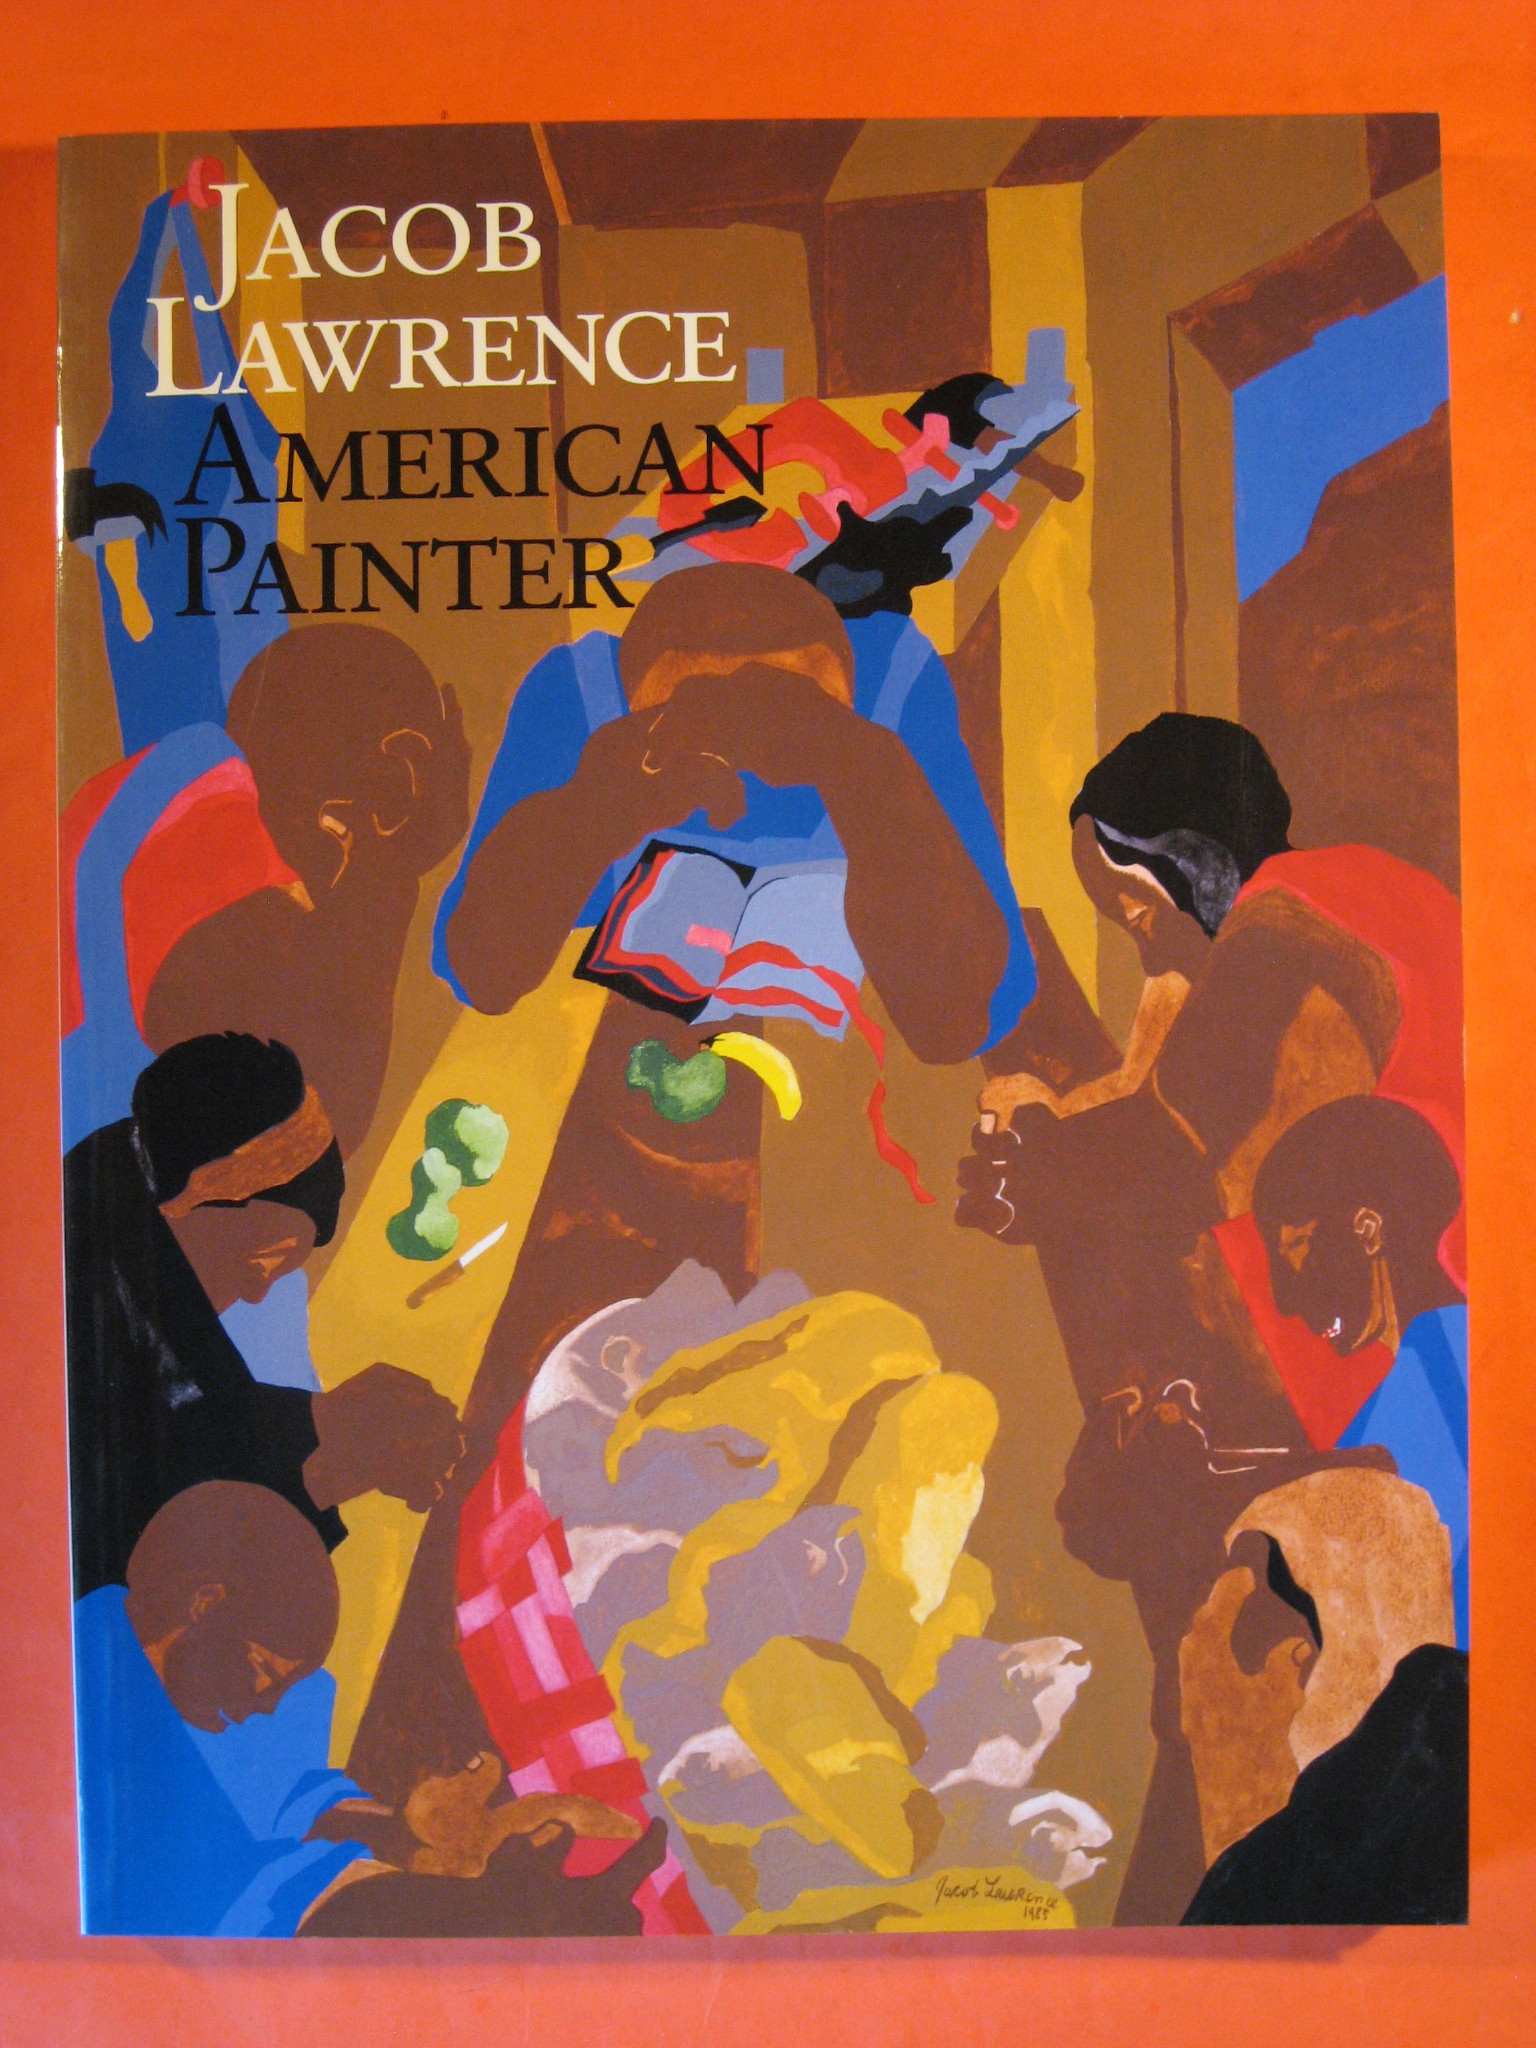 Jacob Lawrence: American Painter, Wheat, Ellen Harkins